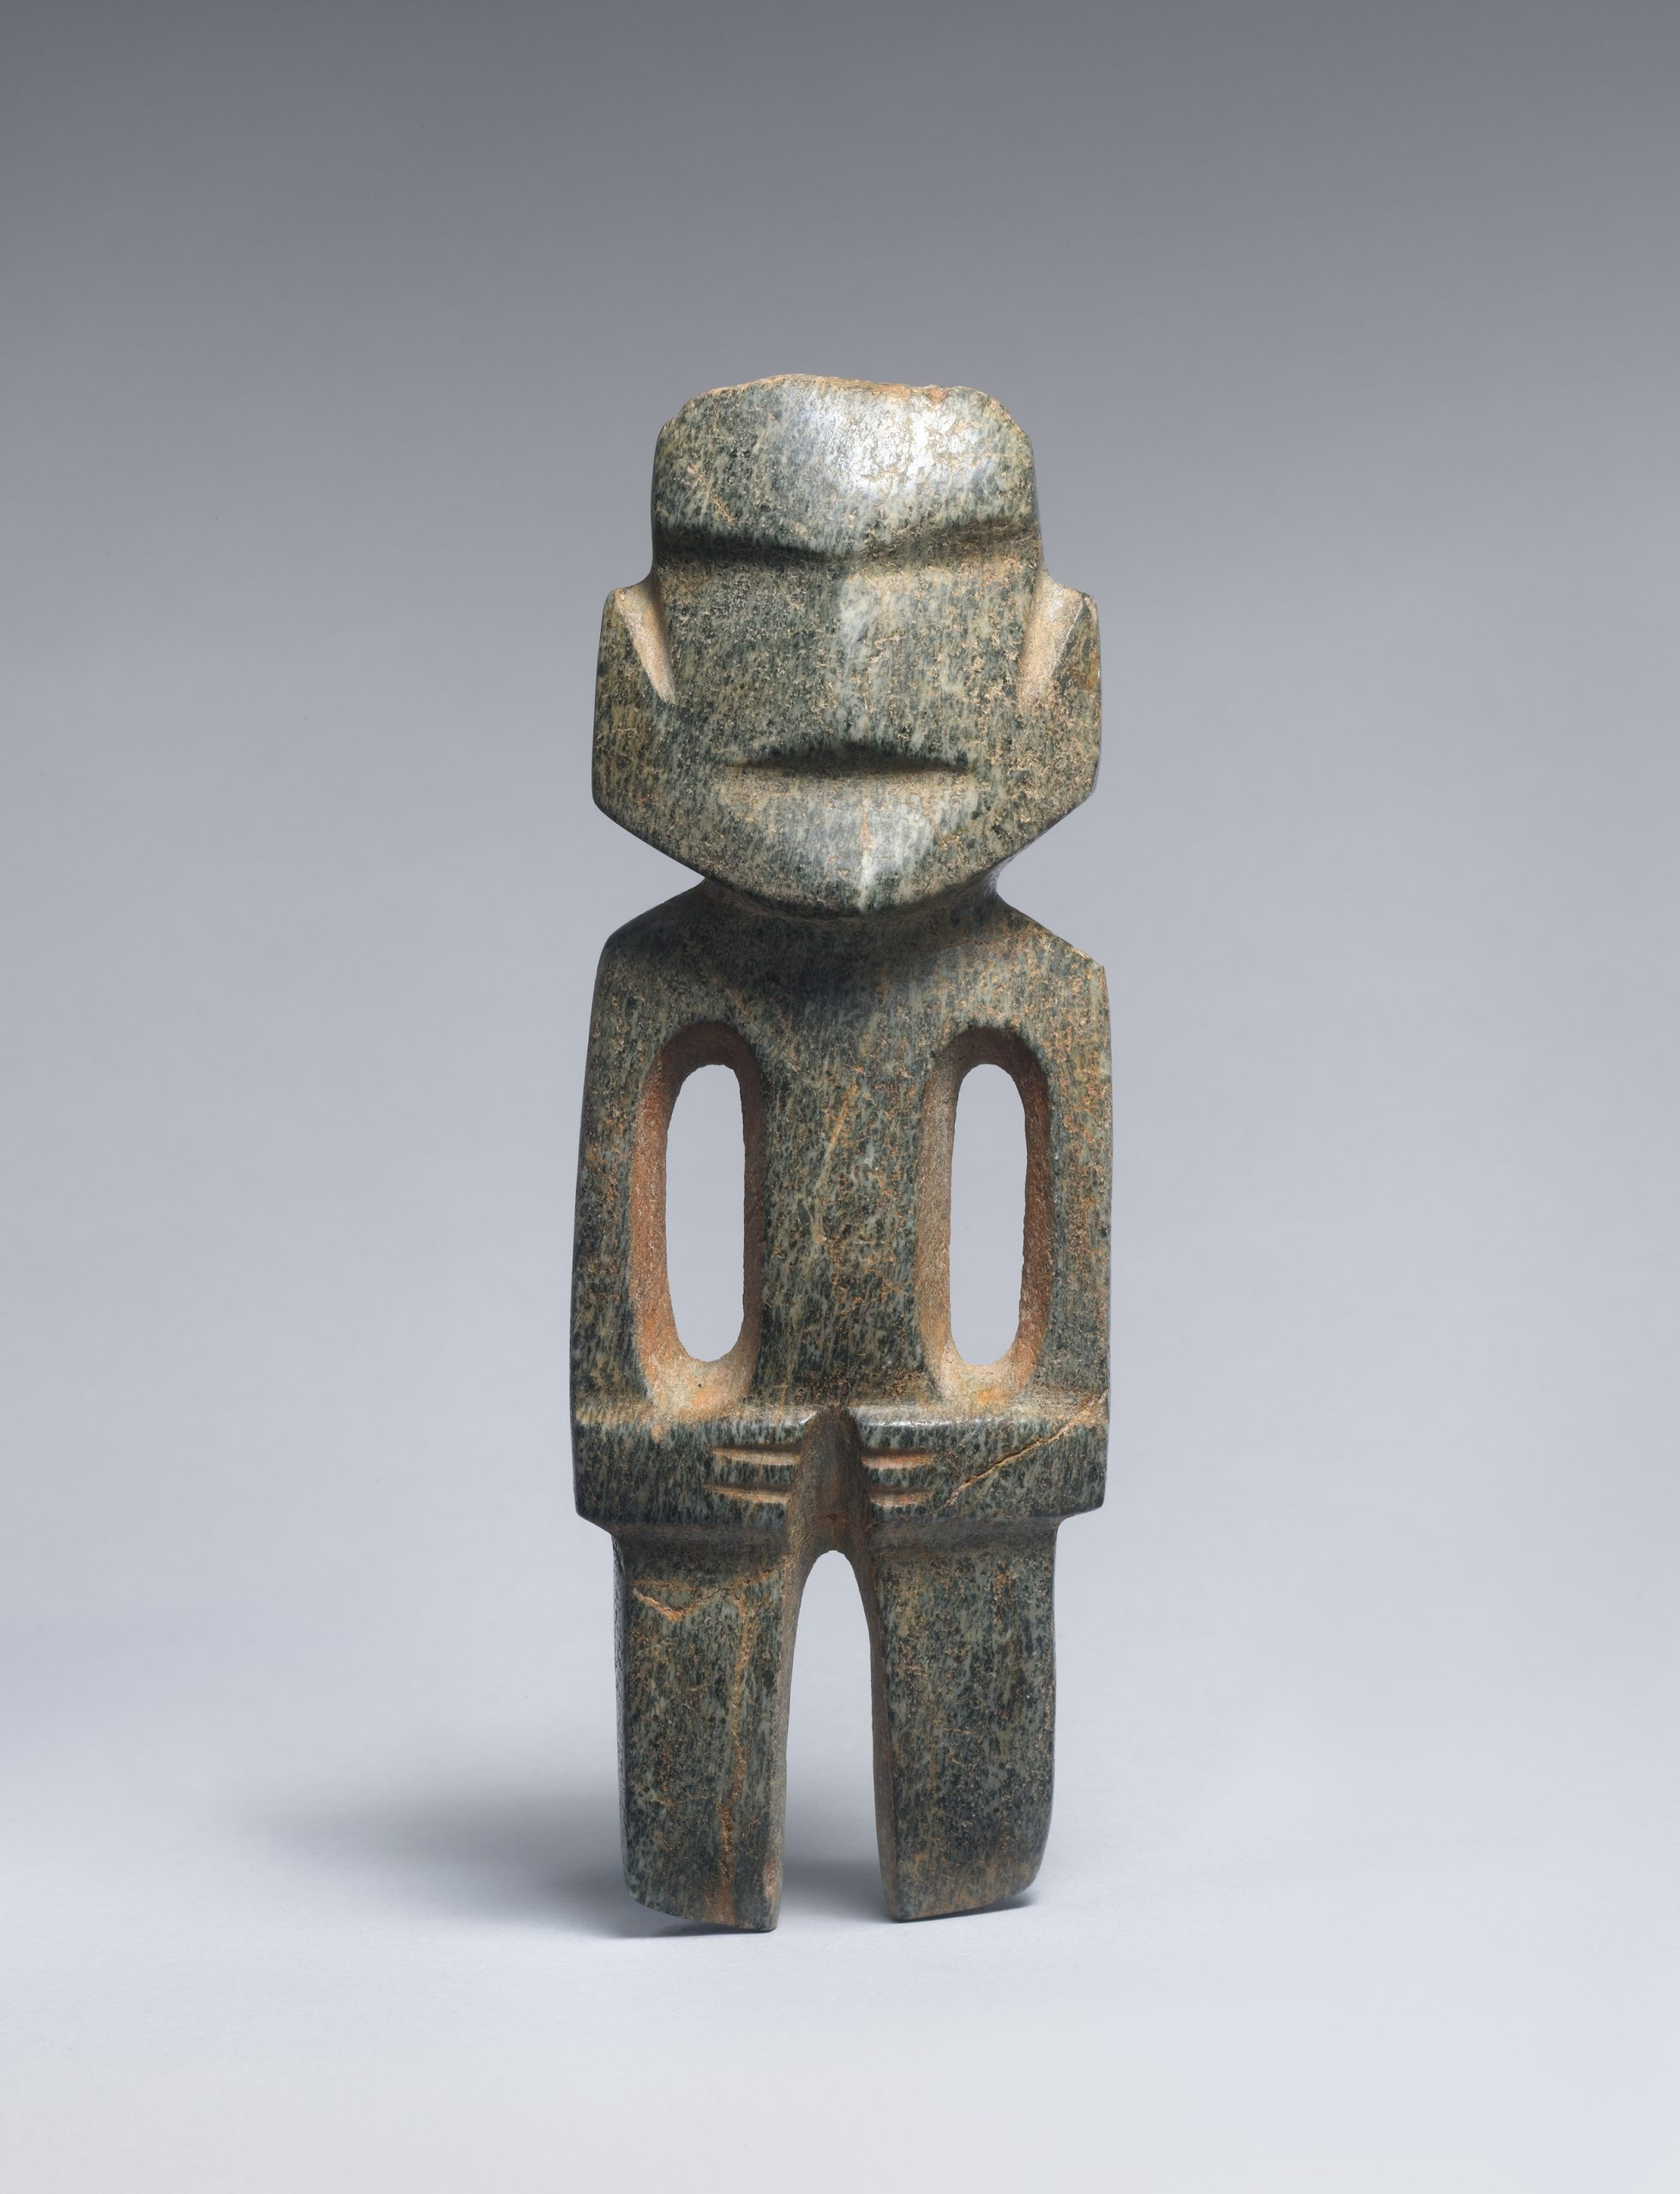 A stylized human figure with facial features carved out, body compressed.